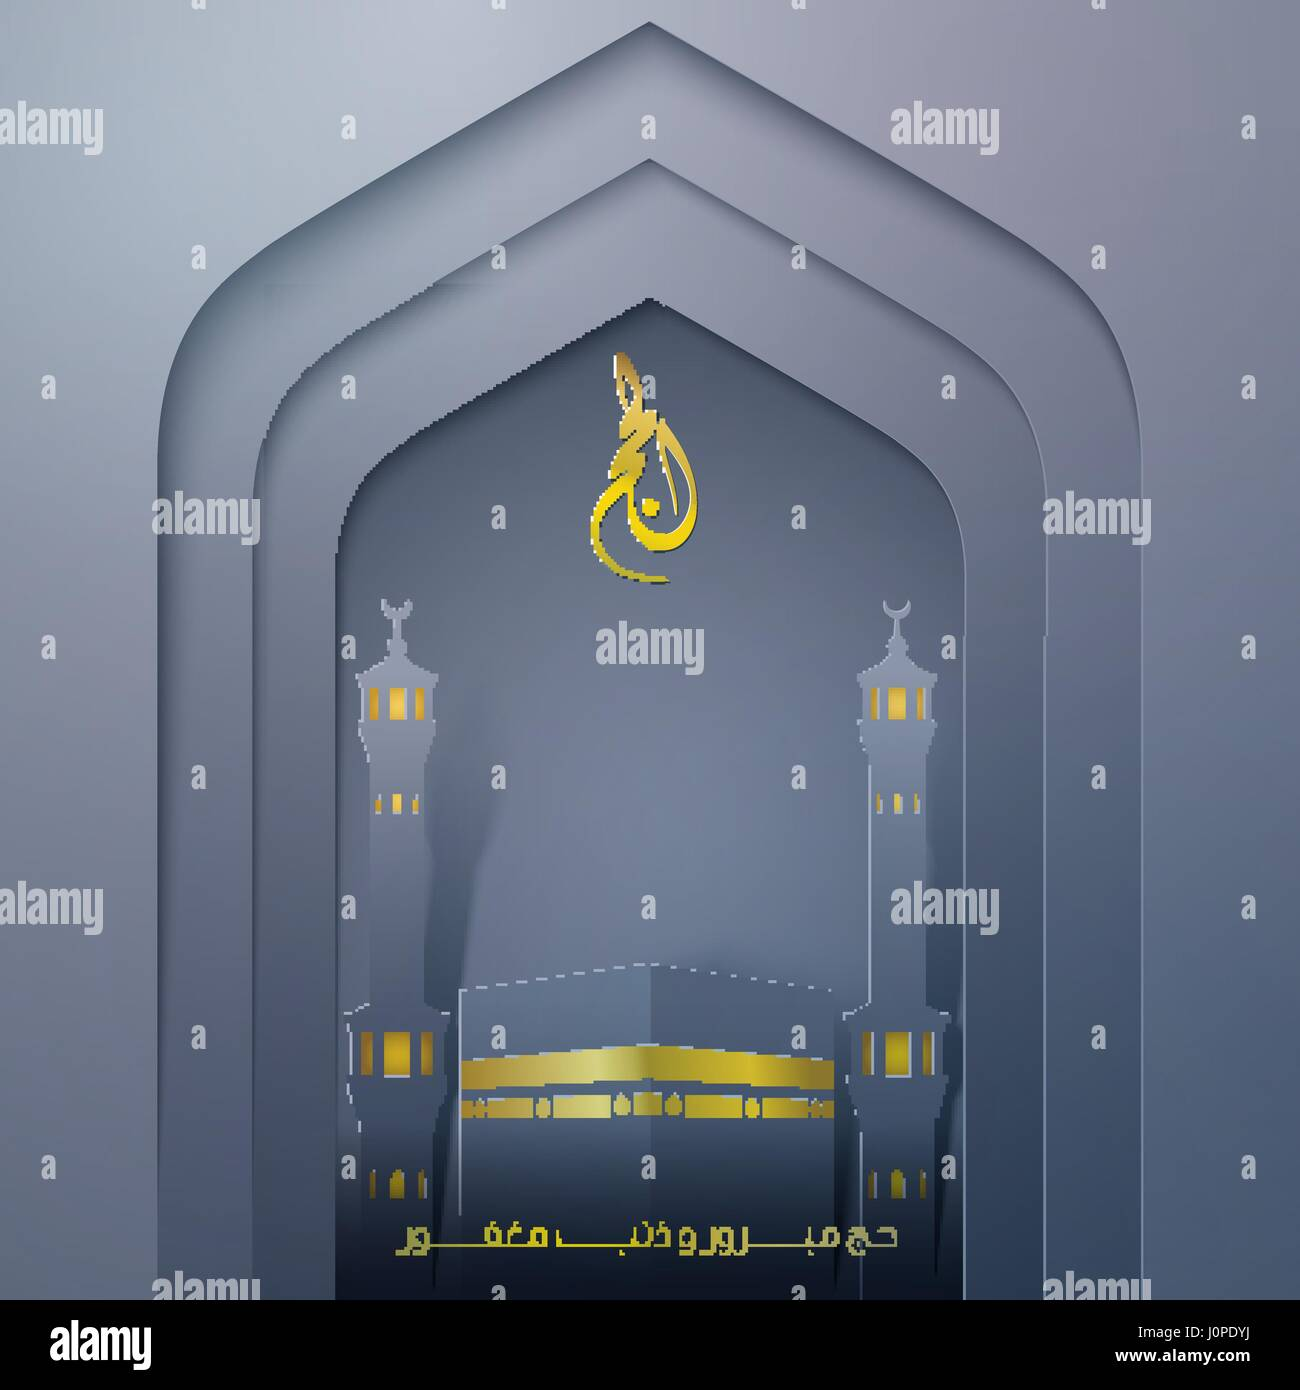 Umrah Banner: Mosque Door With Kaaba Haram Mosque For Hajj Greeting